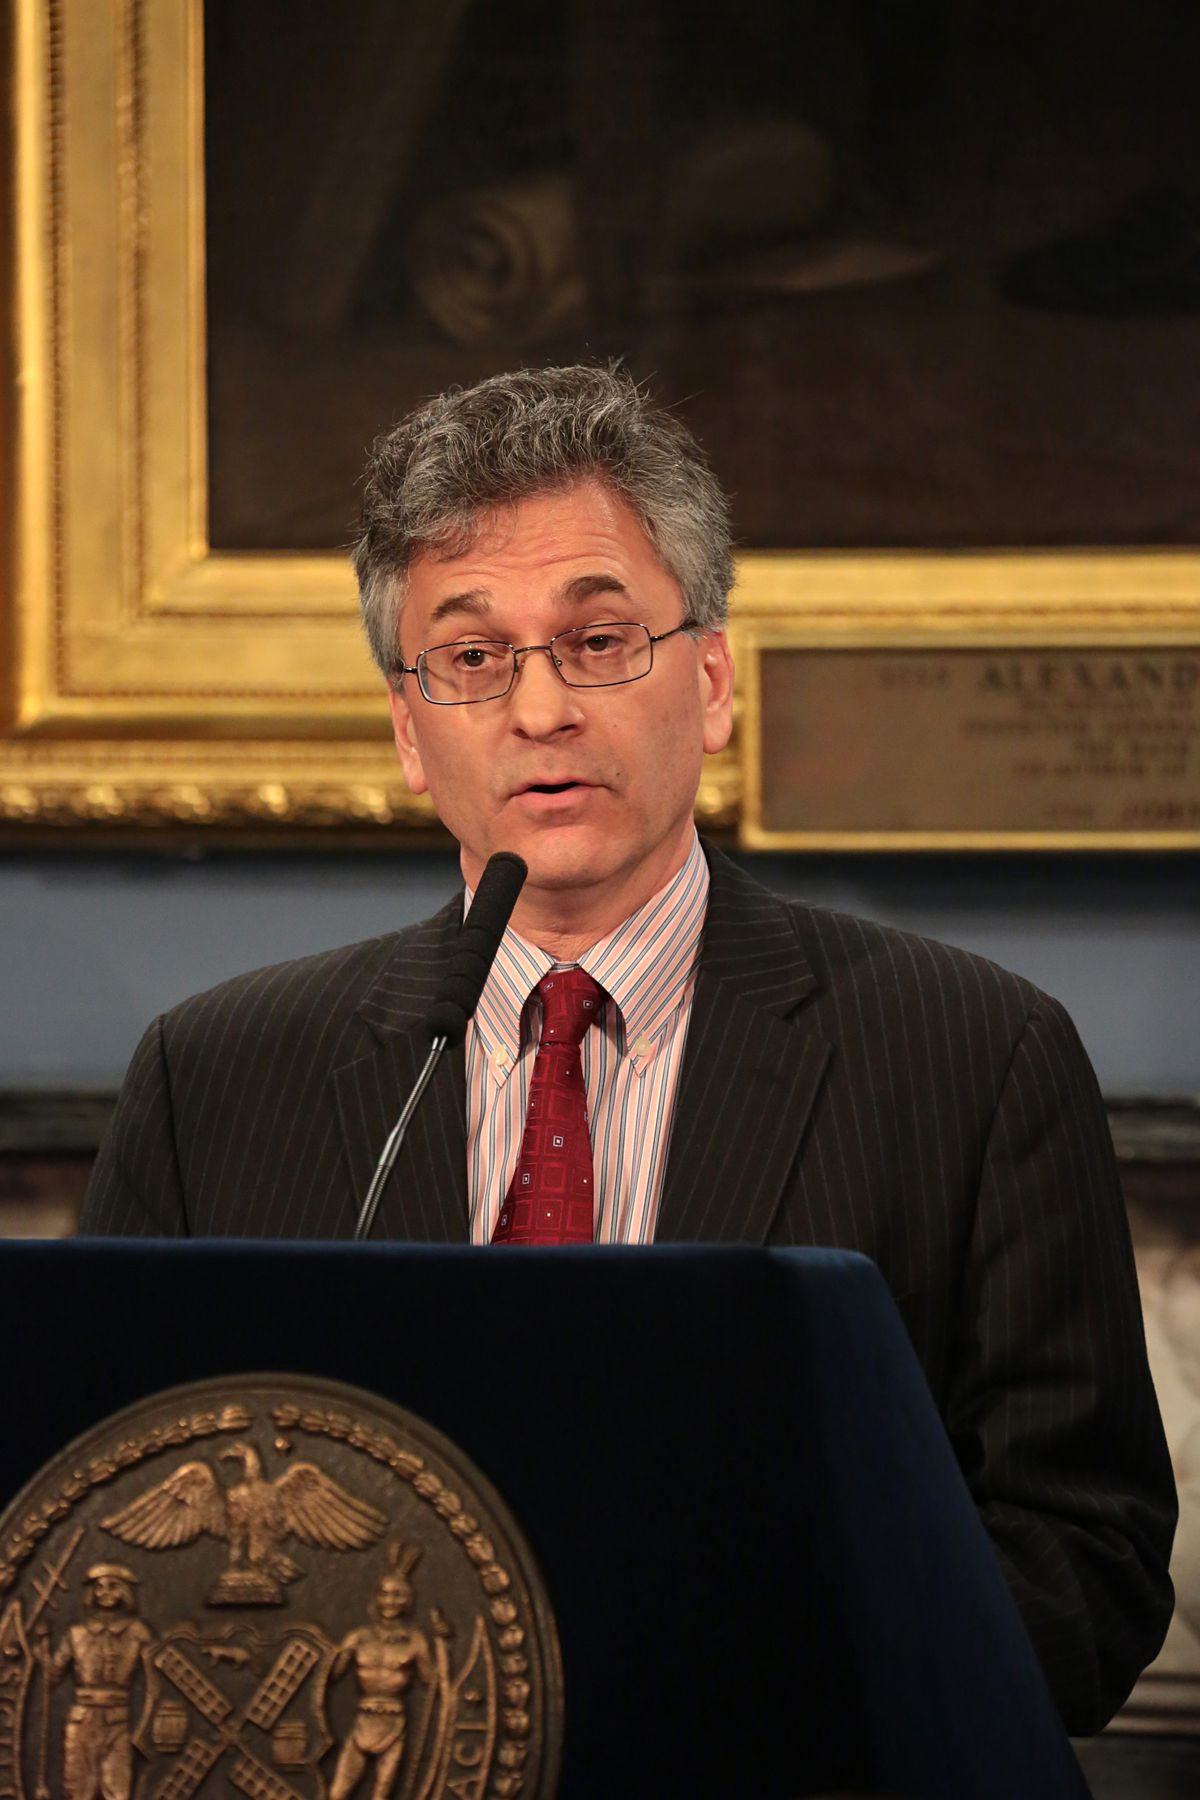 Vincent Schiraldi speaks in City Hall after being named a senior advisor to the Office of Criminal Justice, March 11, 2014.